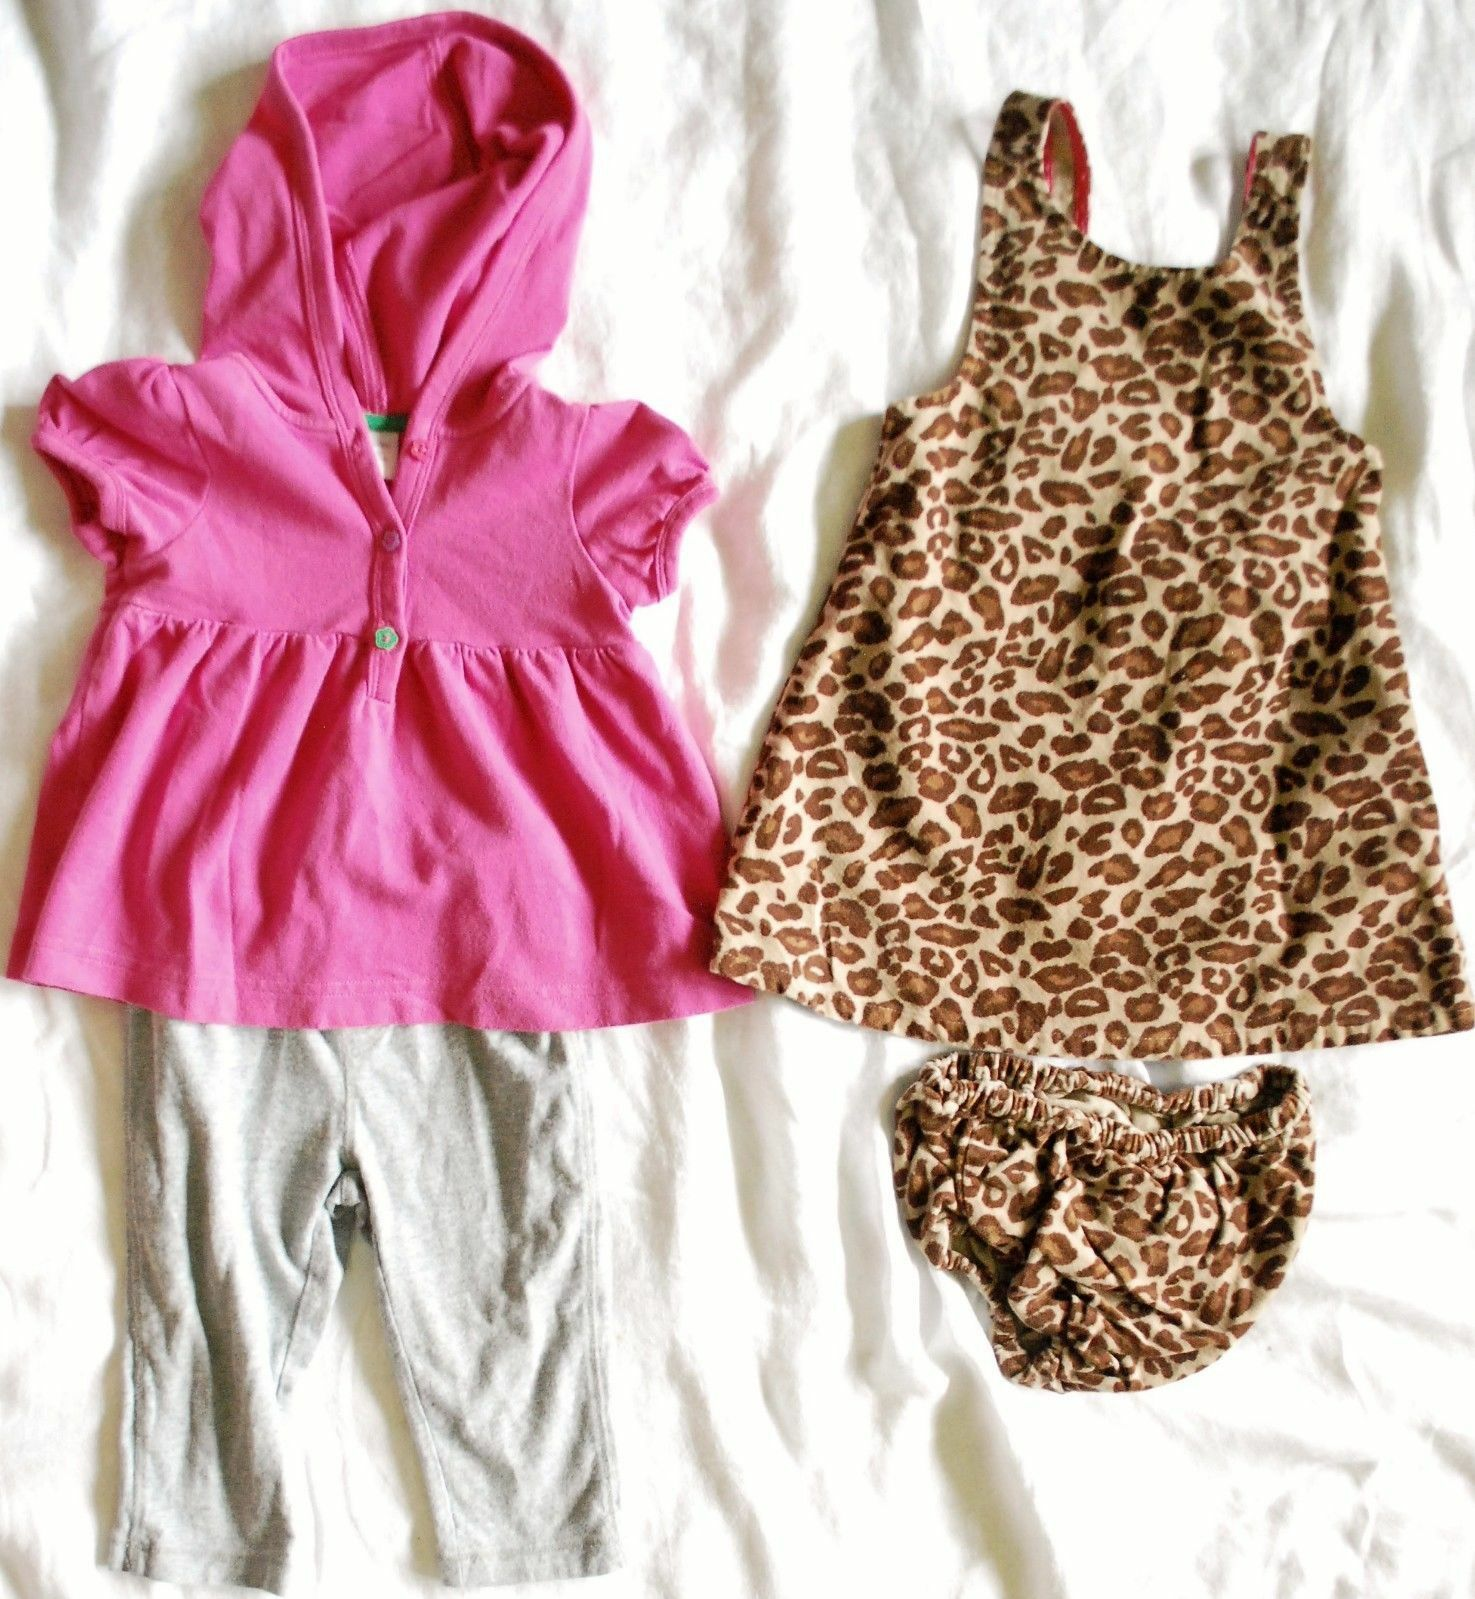 2 Gymboree Dress 2pc Baby Gap Outfit Girls Size 12 18m Leopard Tutu Flower Pink 0 2th 1 Of 8only Available See More